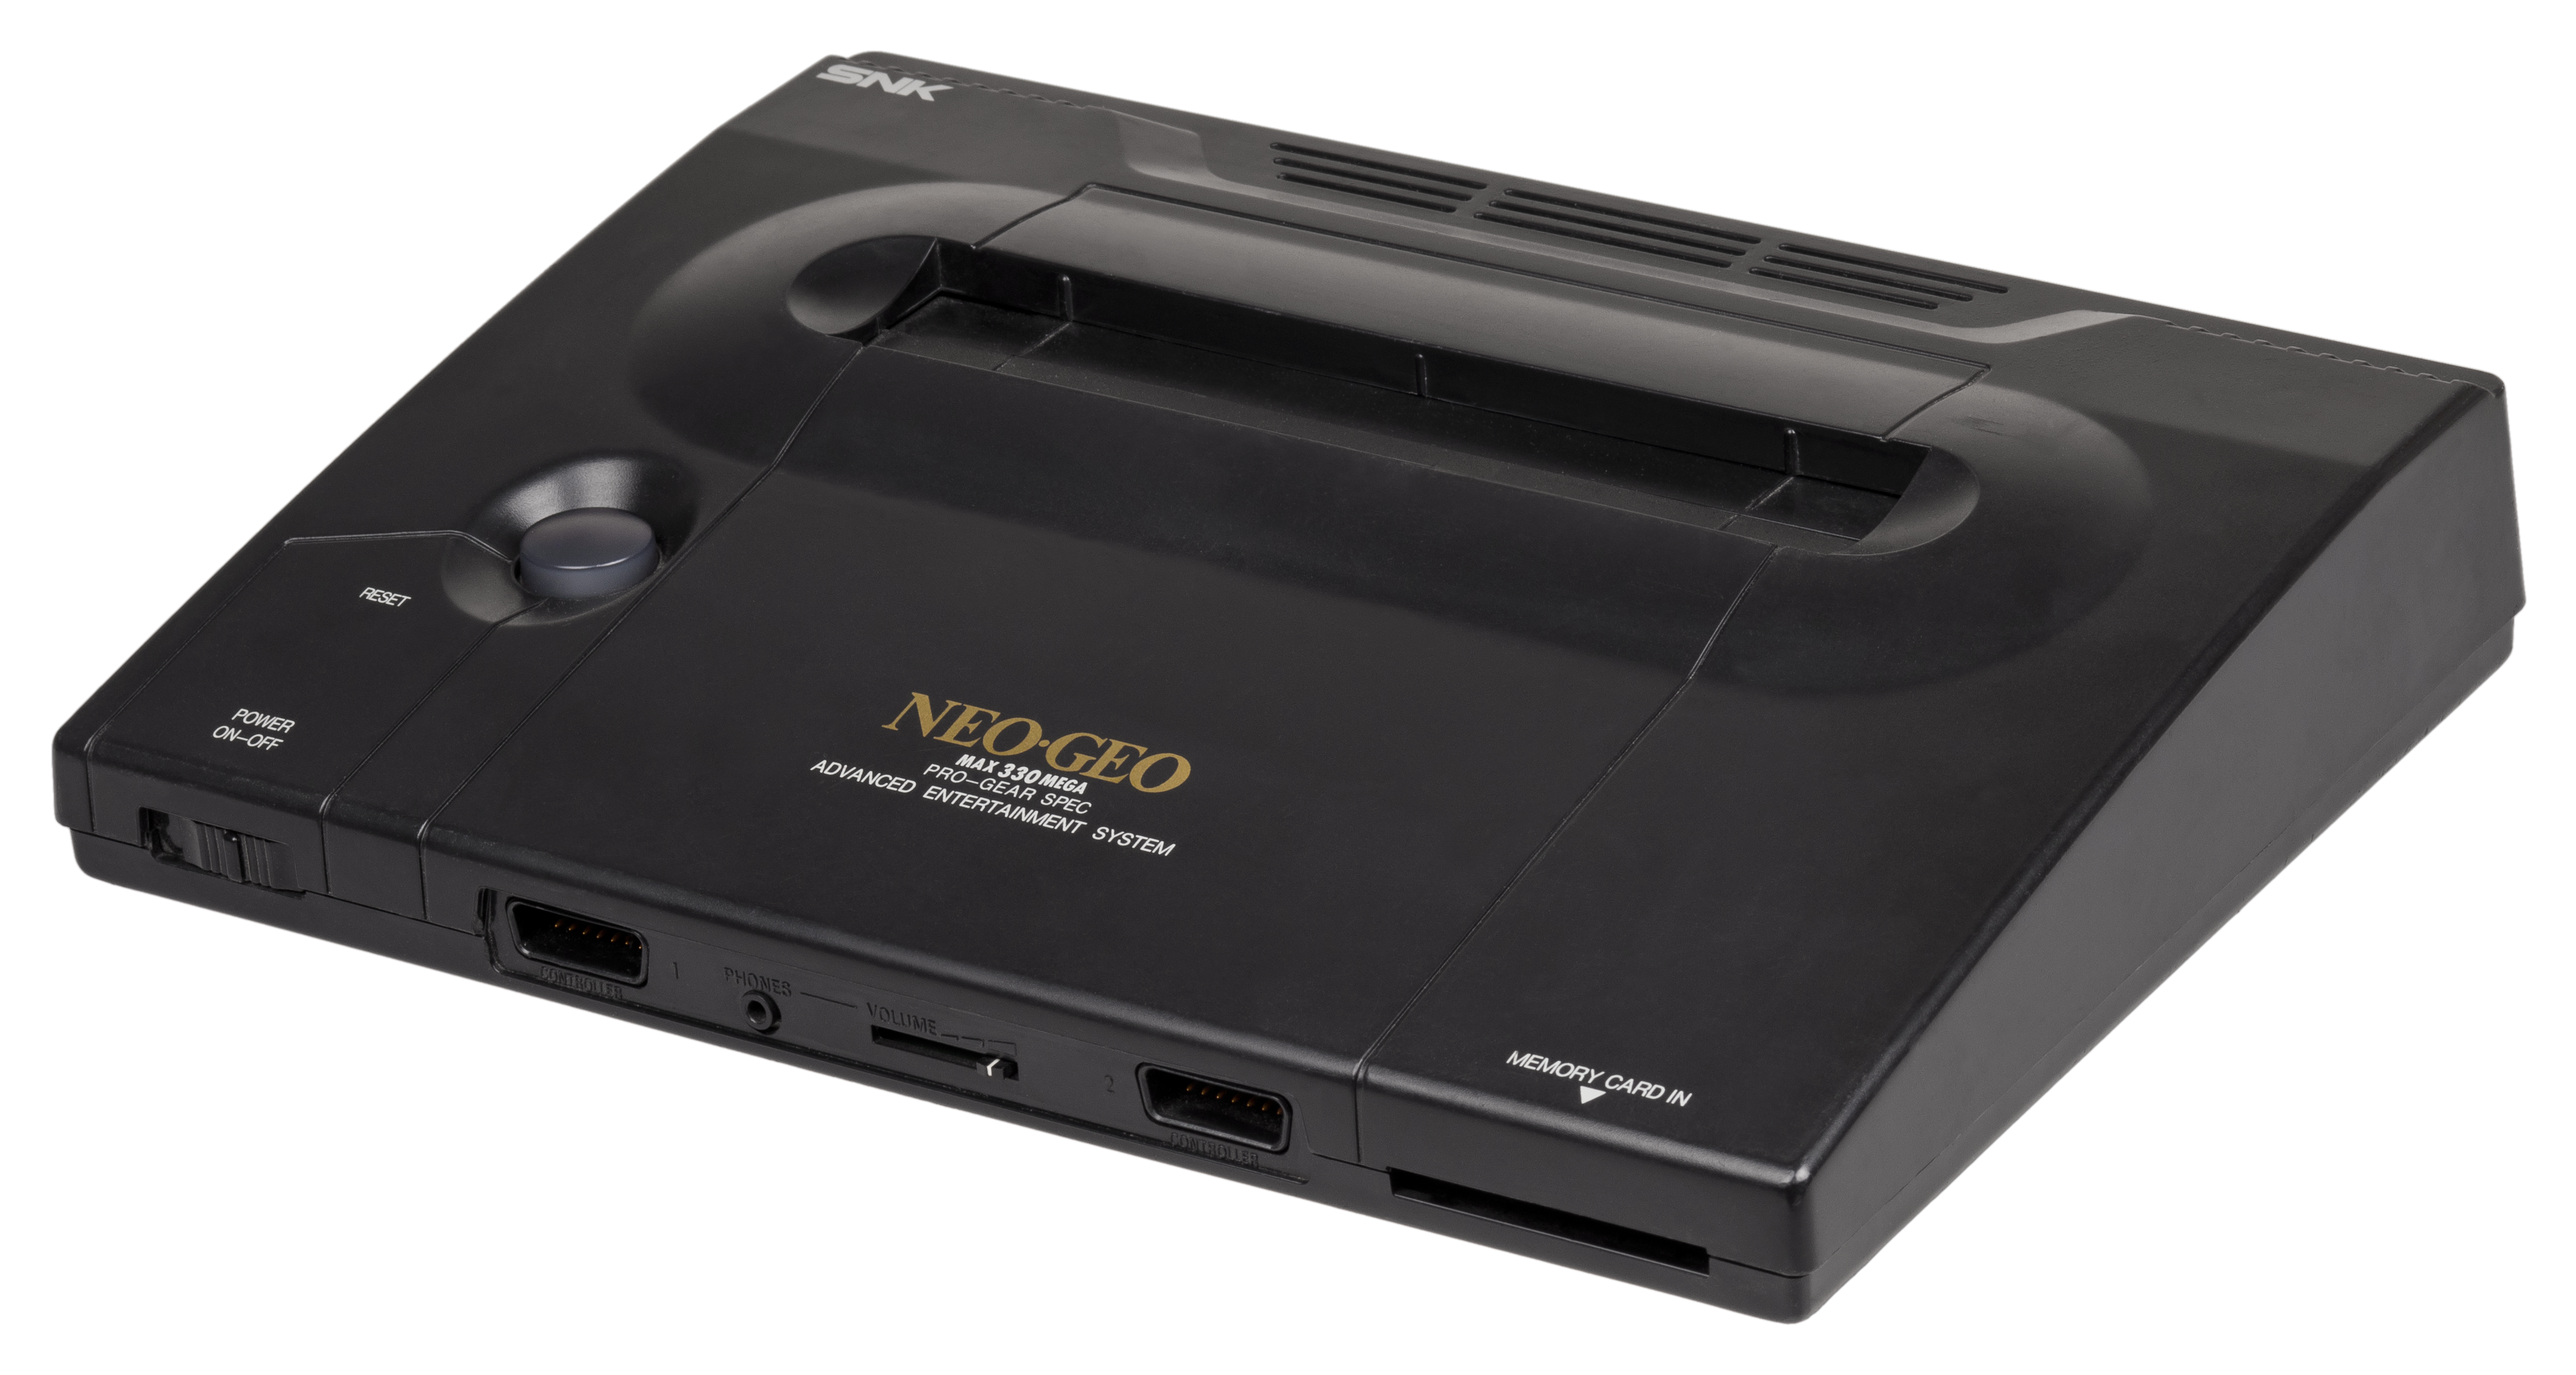 SNK Neo Geo roms, games and ISOs to download for emulation